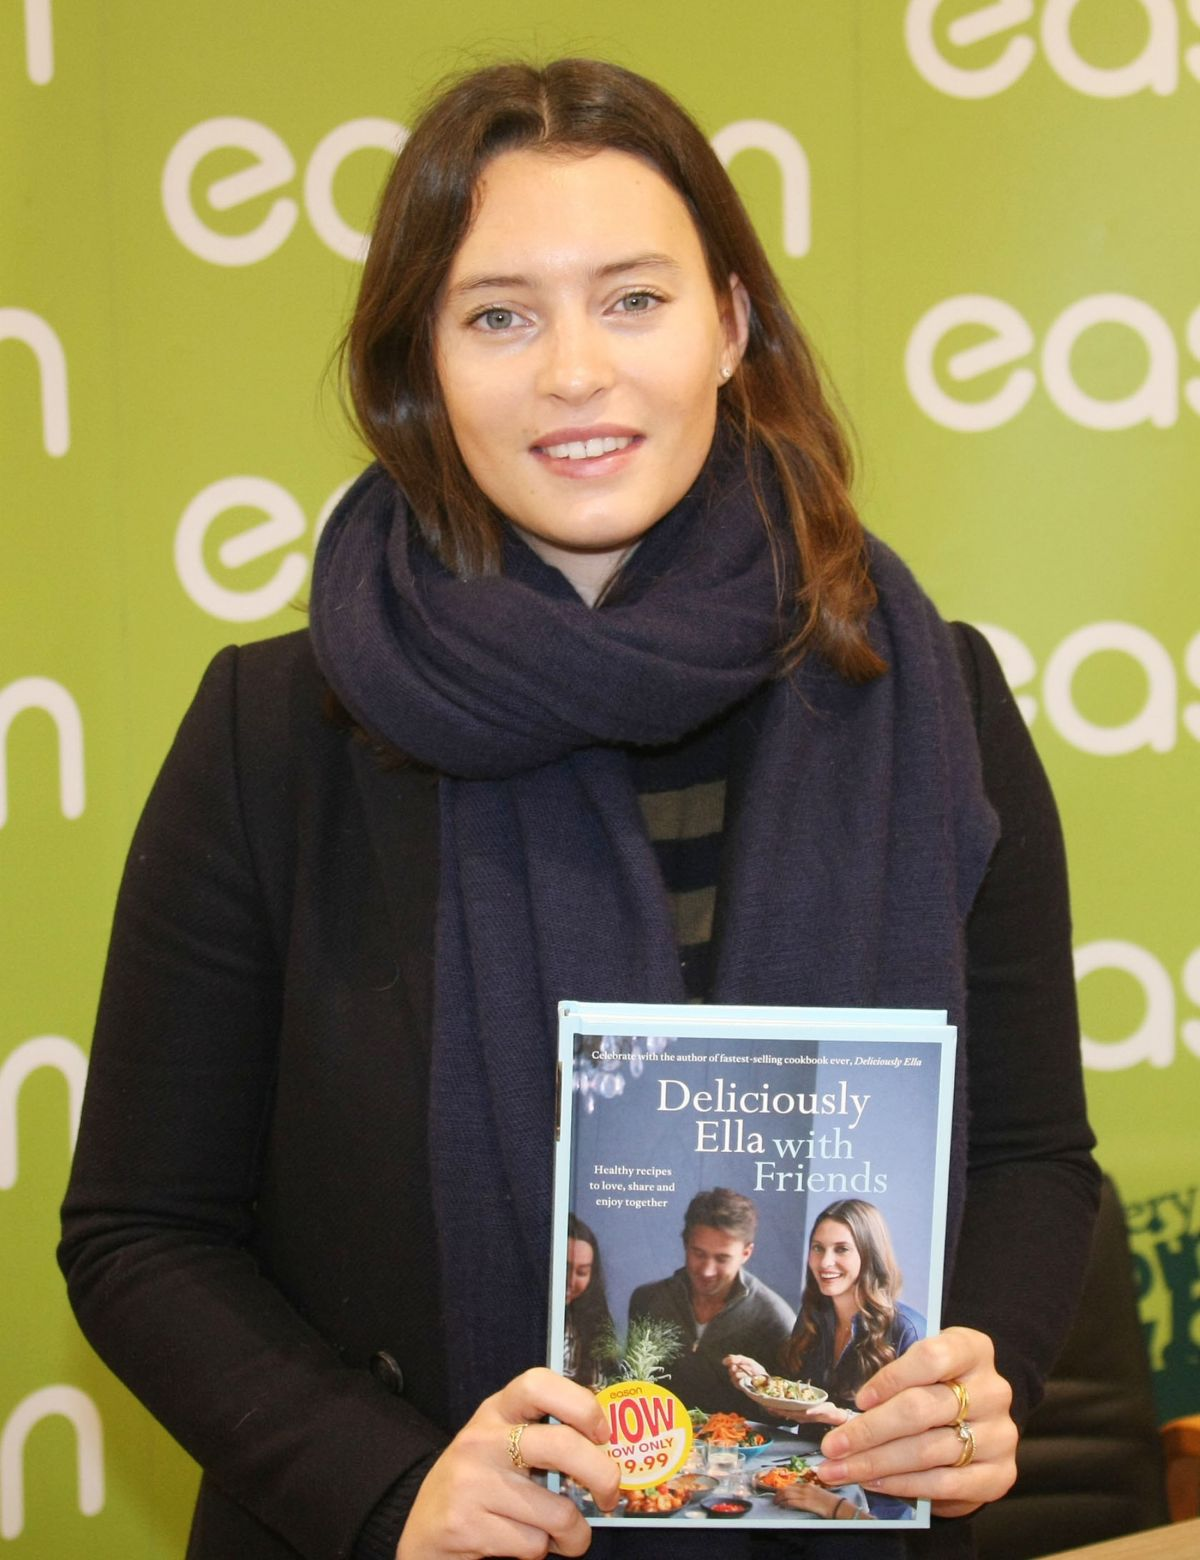 ELLA WOODWARD Promoting Her